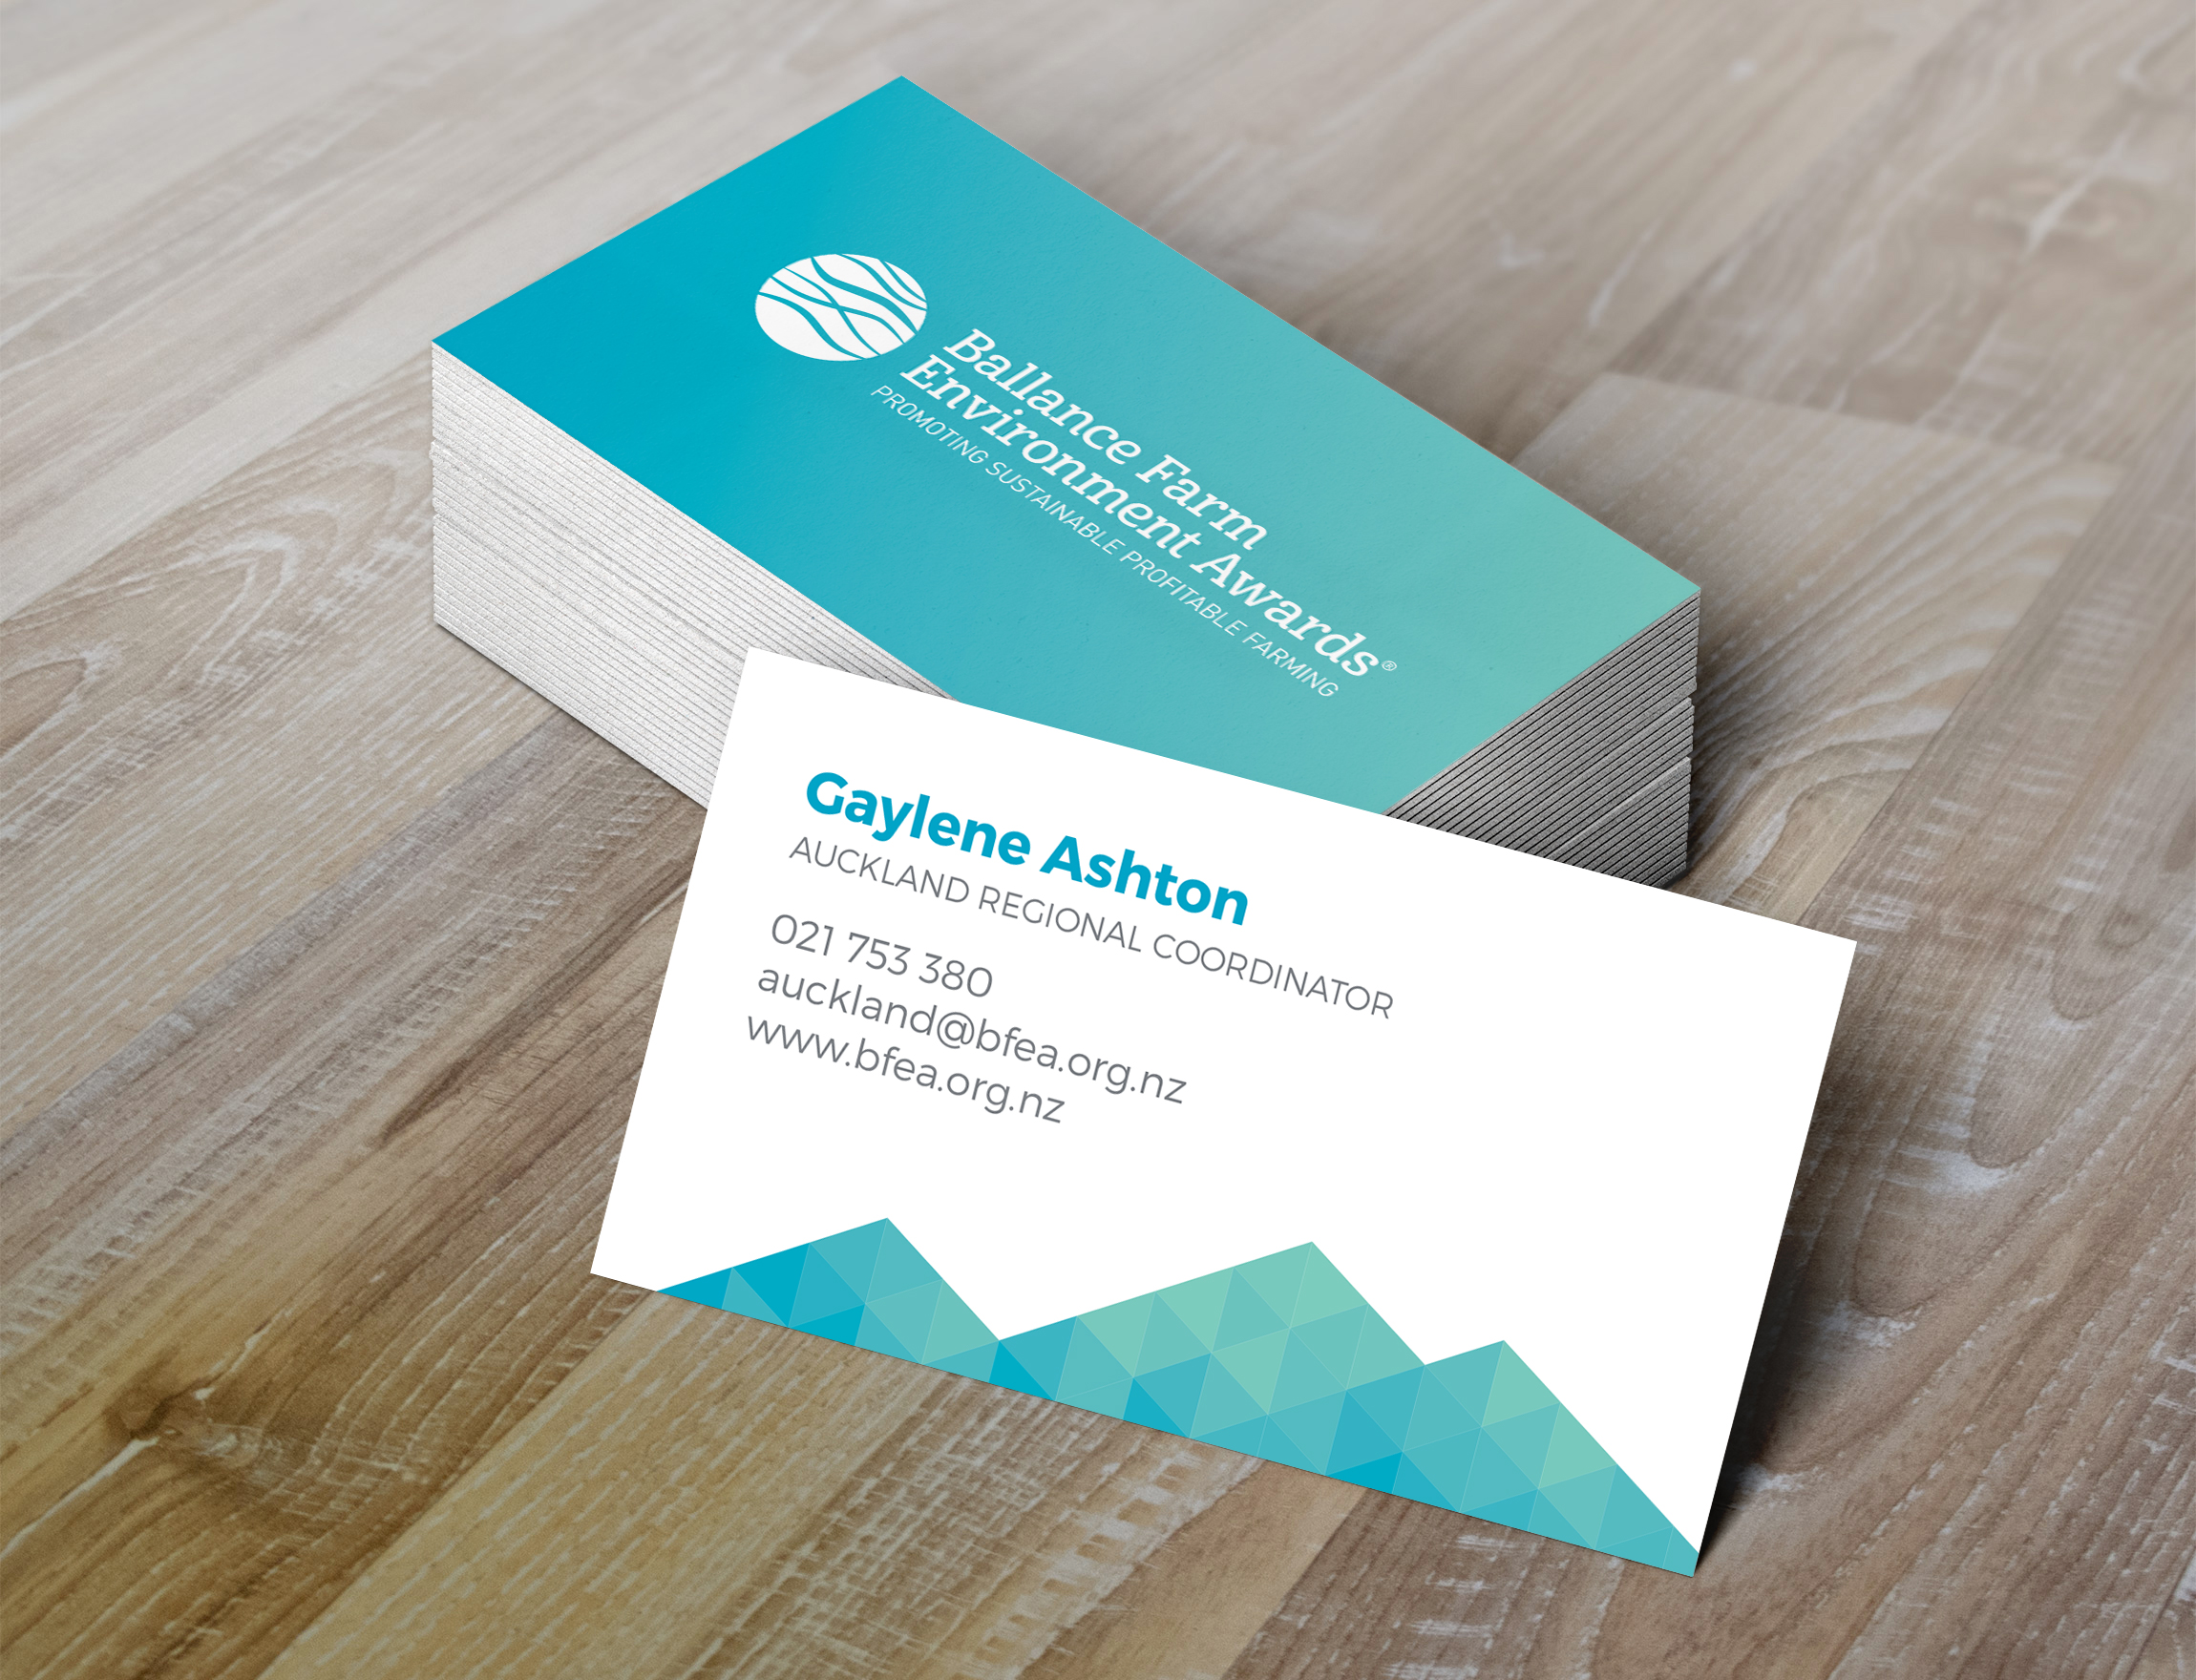 BFEA-Business-Cards-MockUp